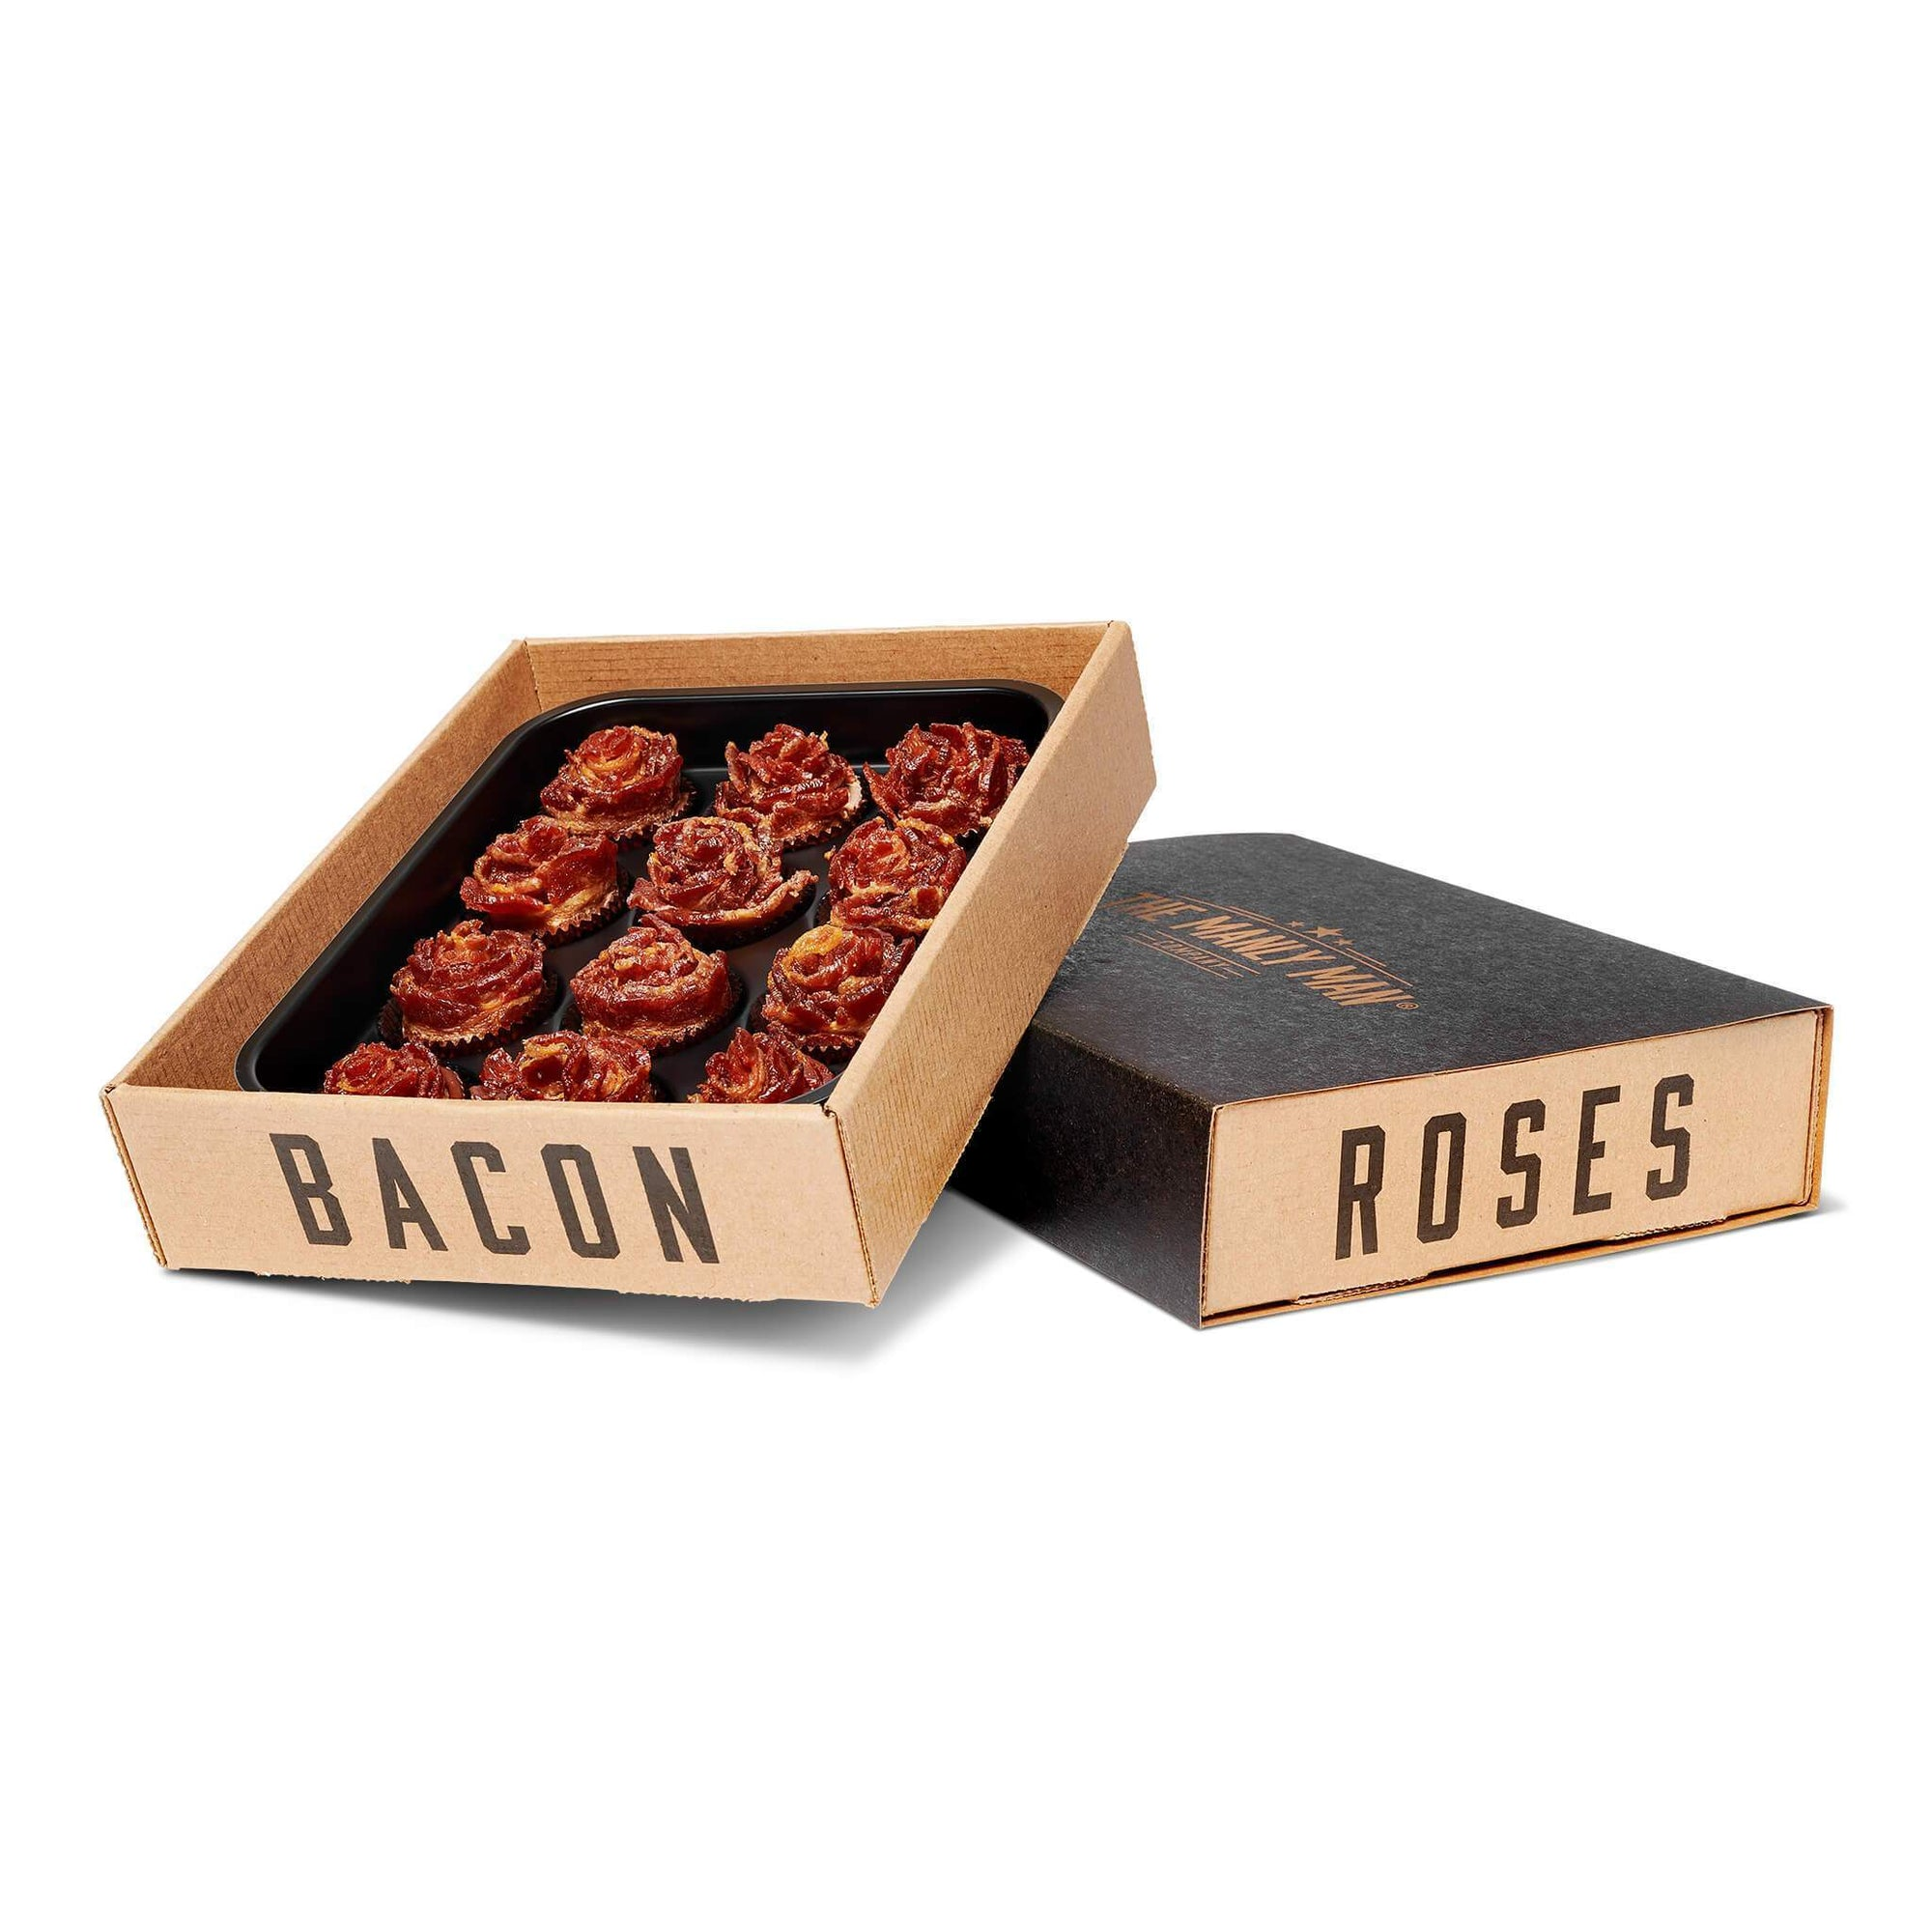 Bacon Gift Boxes